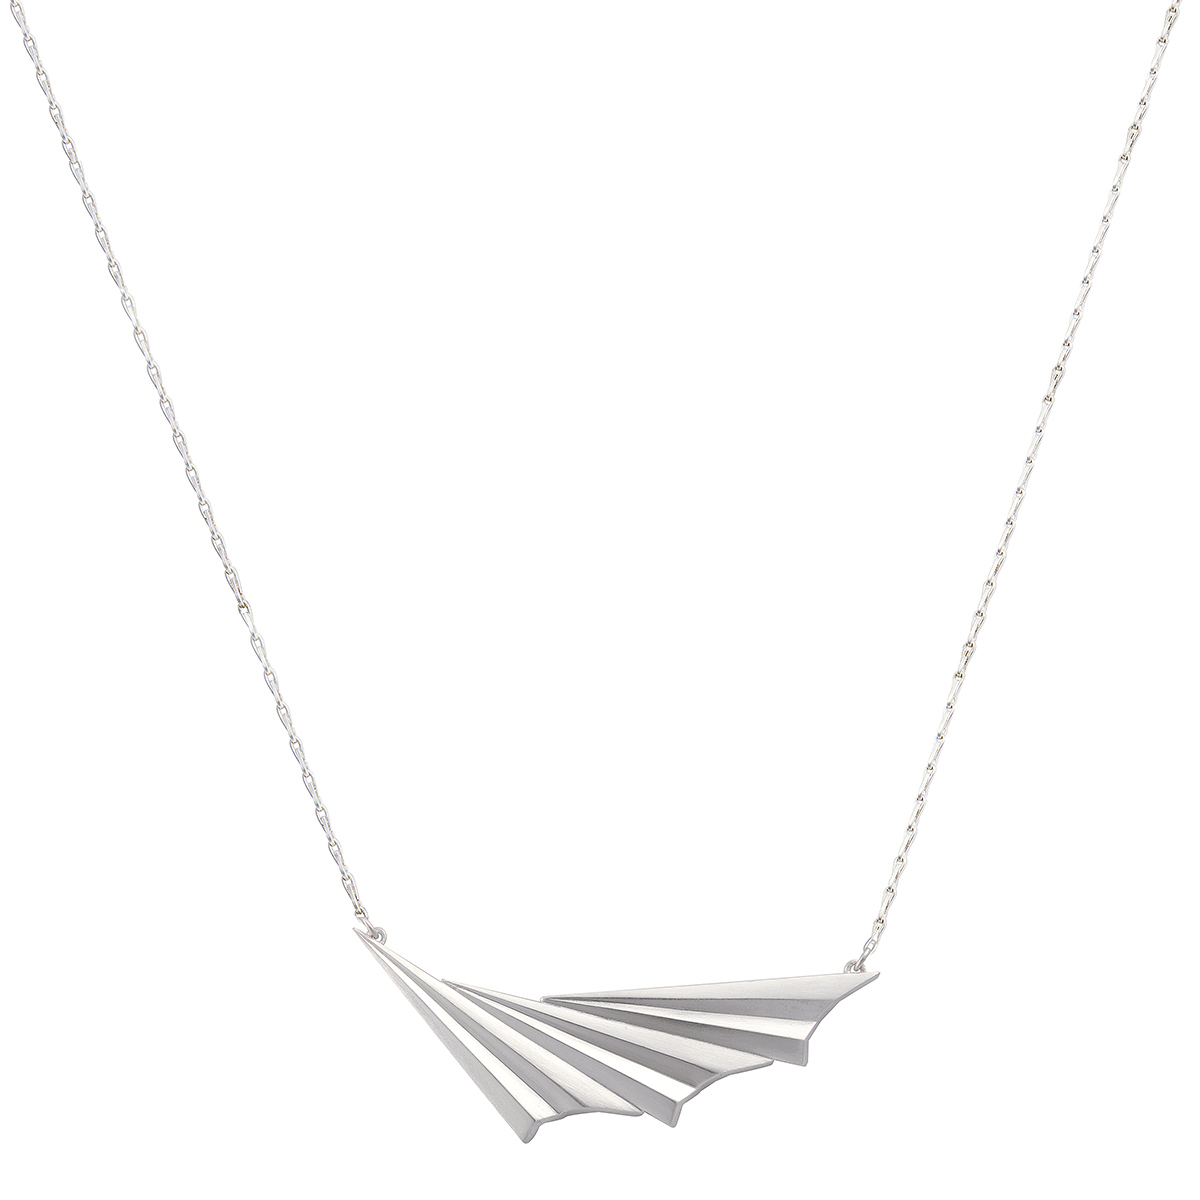 Silver pleated wave necklace